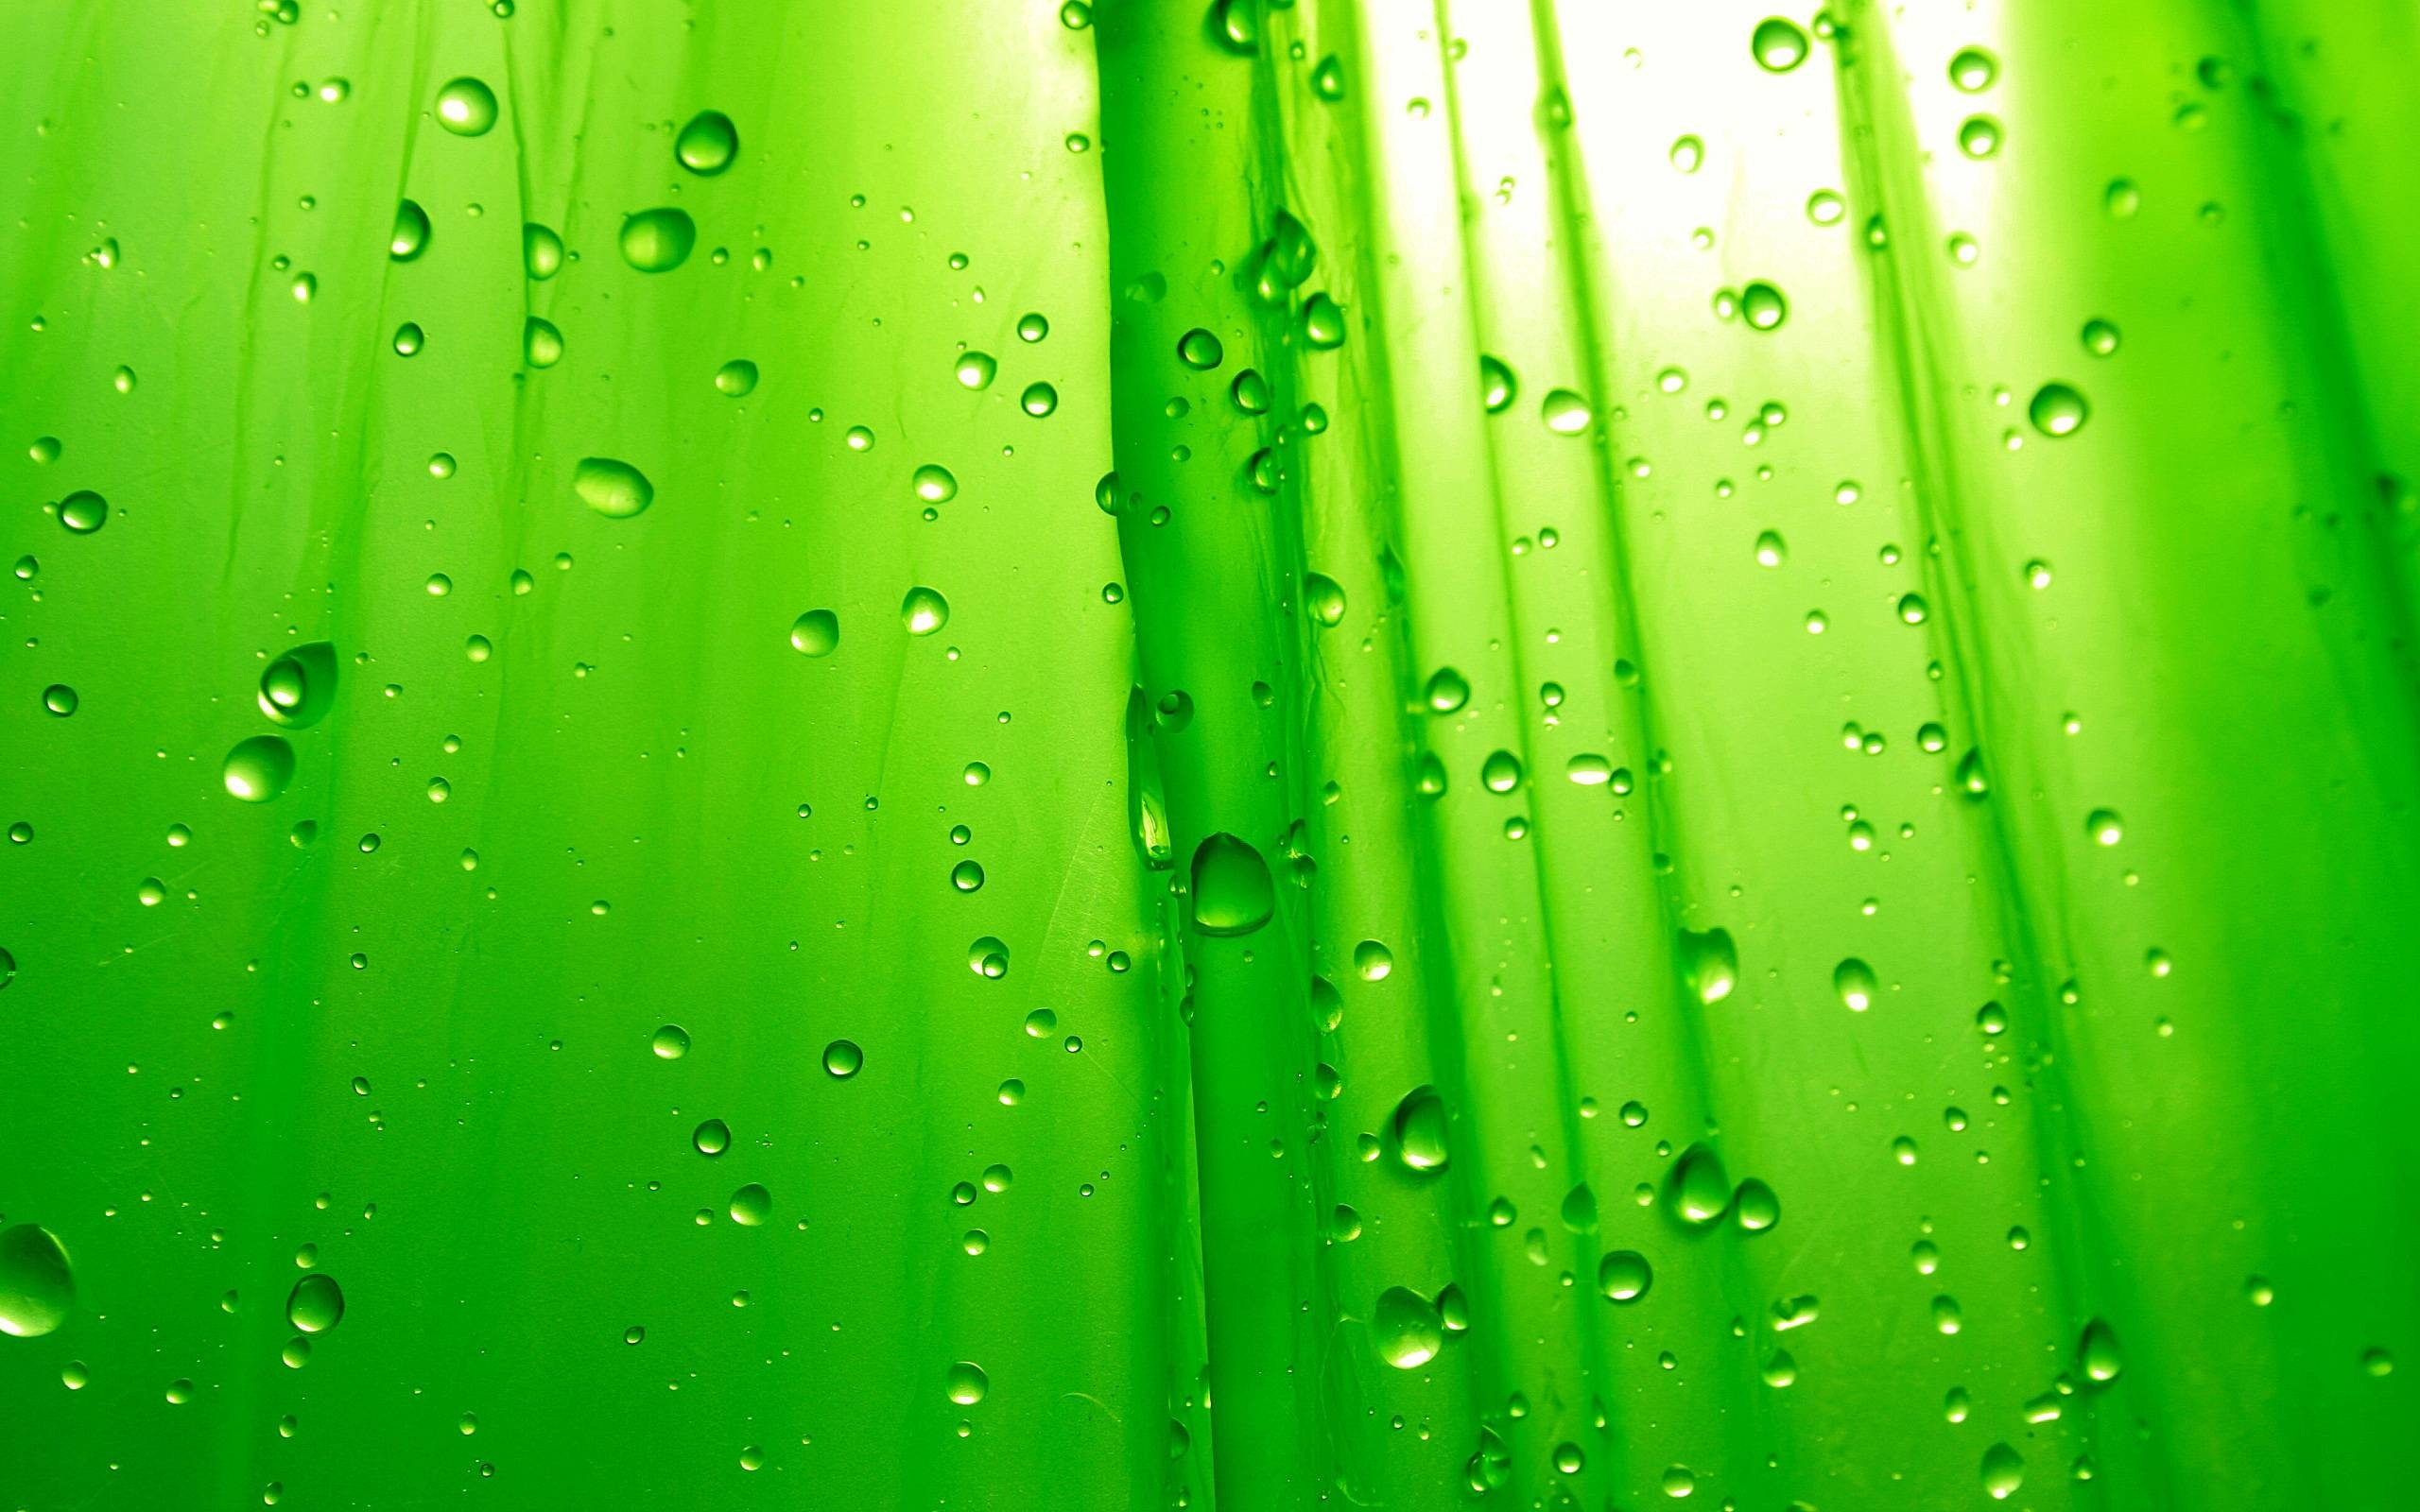 Green HD Wallpapers Widescreen Backgrounds Download